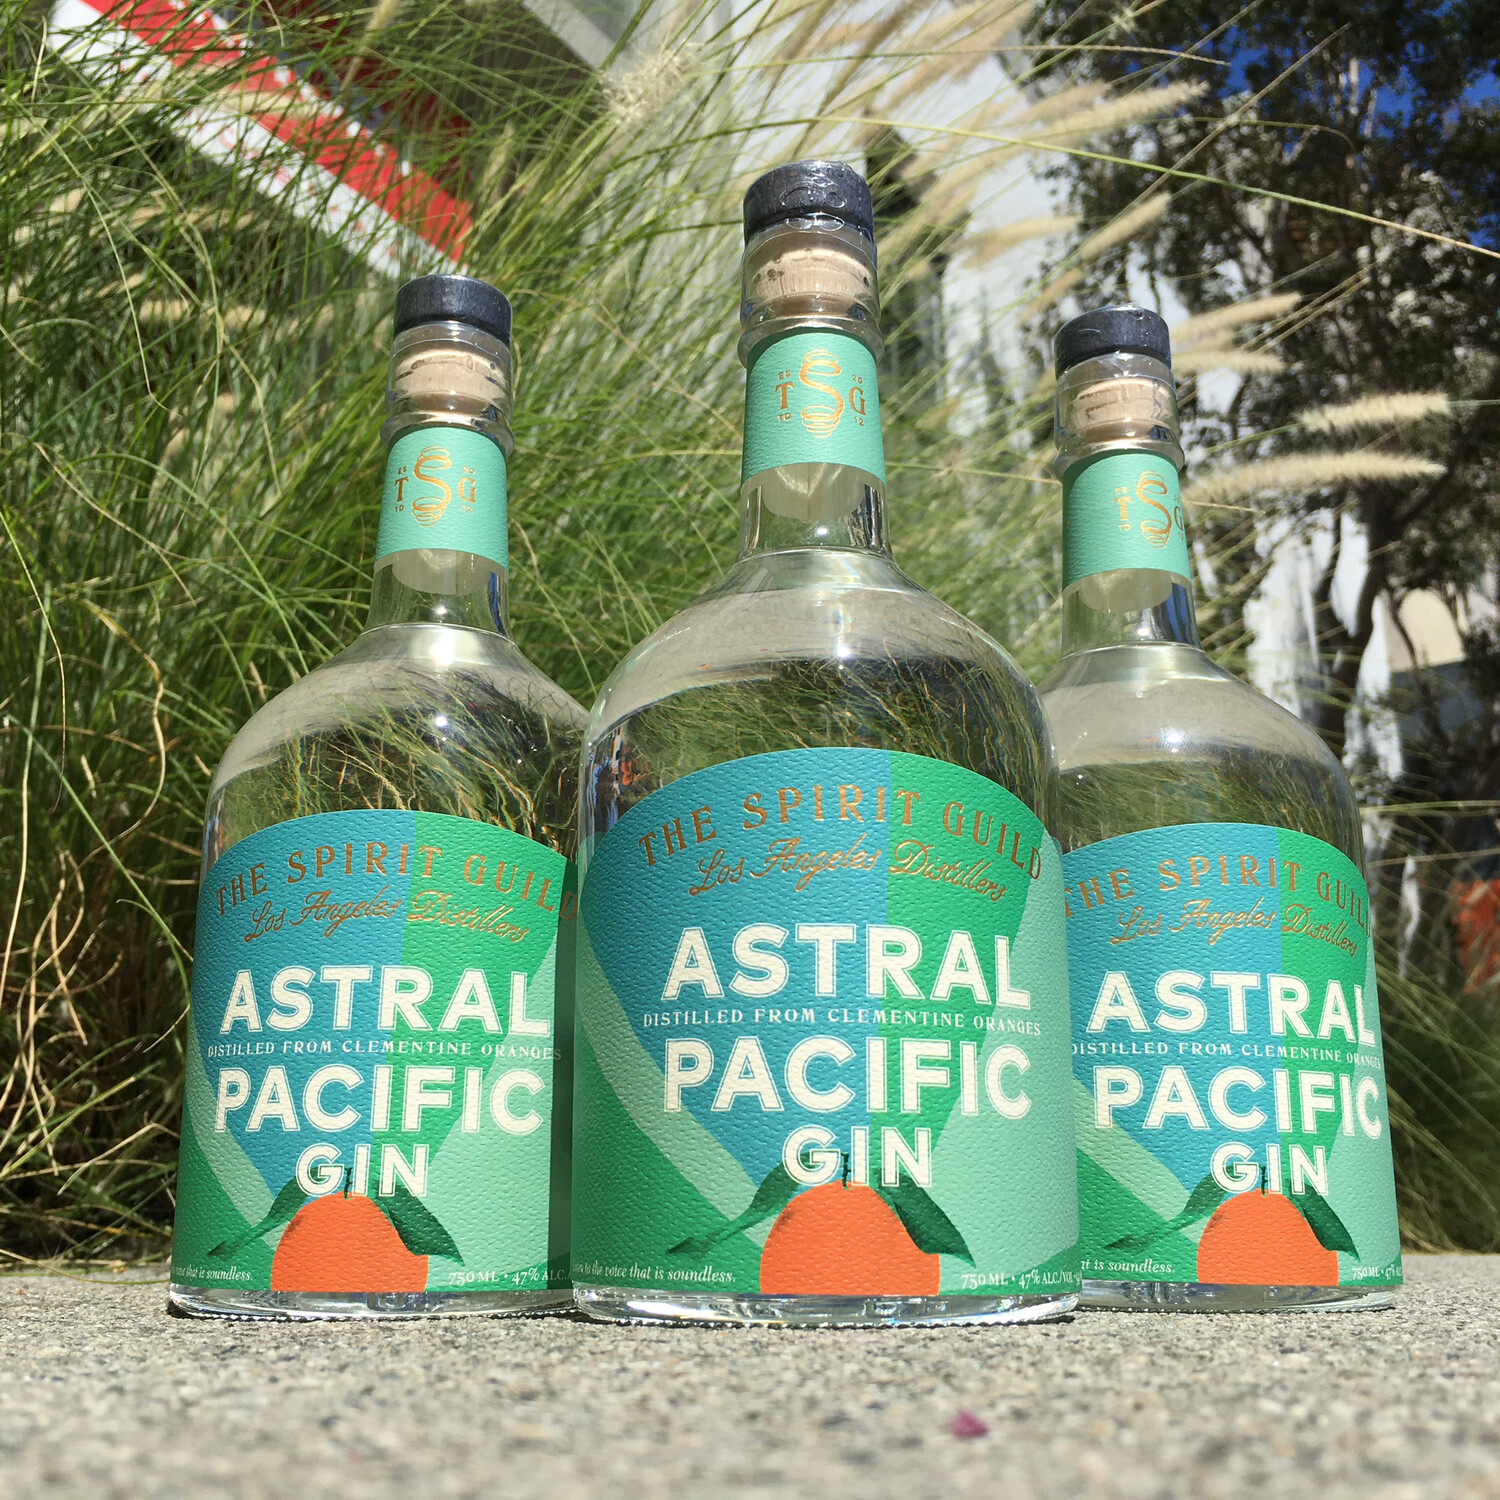 Astral Pacific Gin by The Spirit Guild